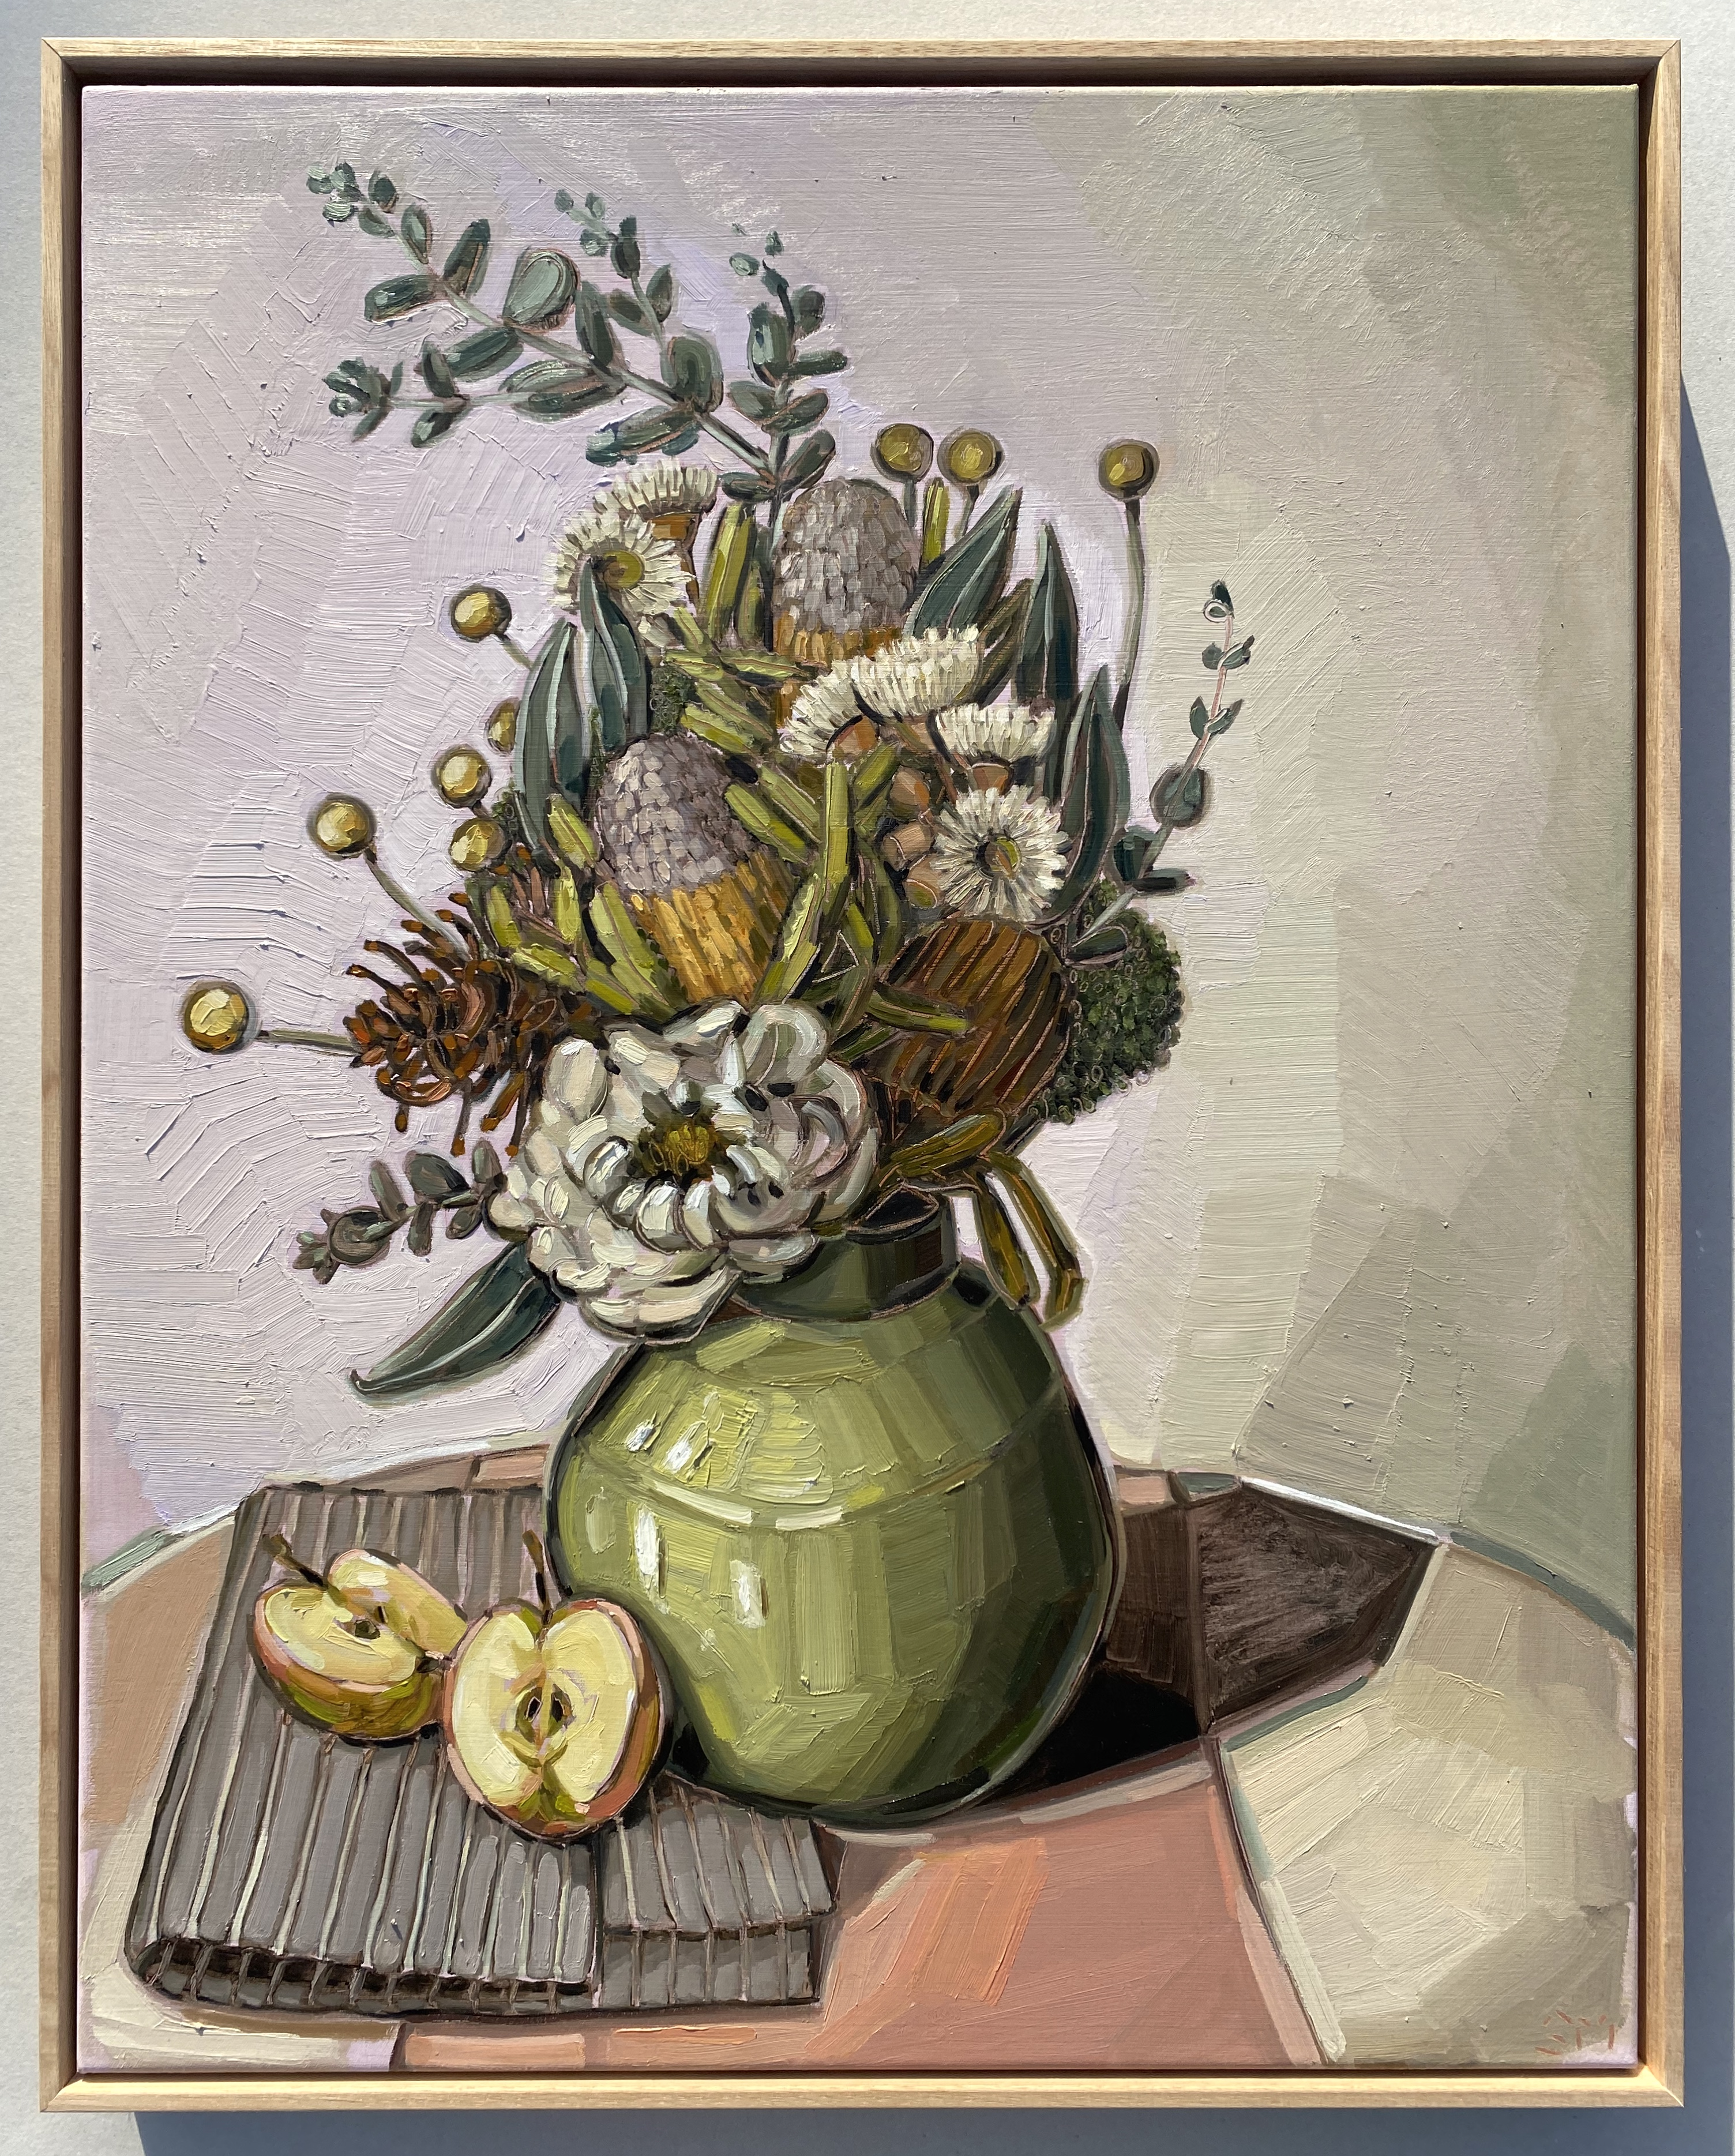 sam michelle 'australian natives, green vase & apples' 73x58cm